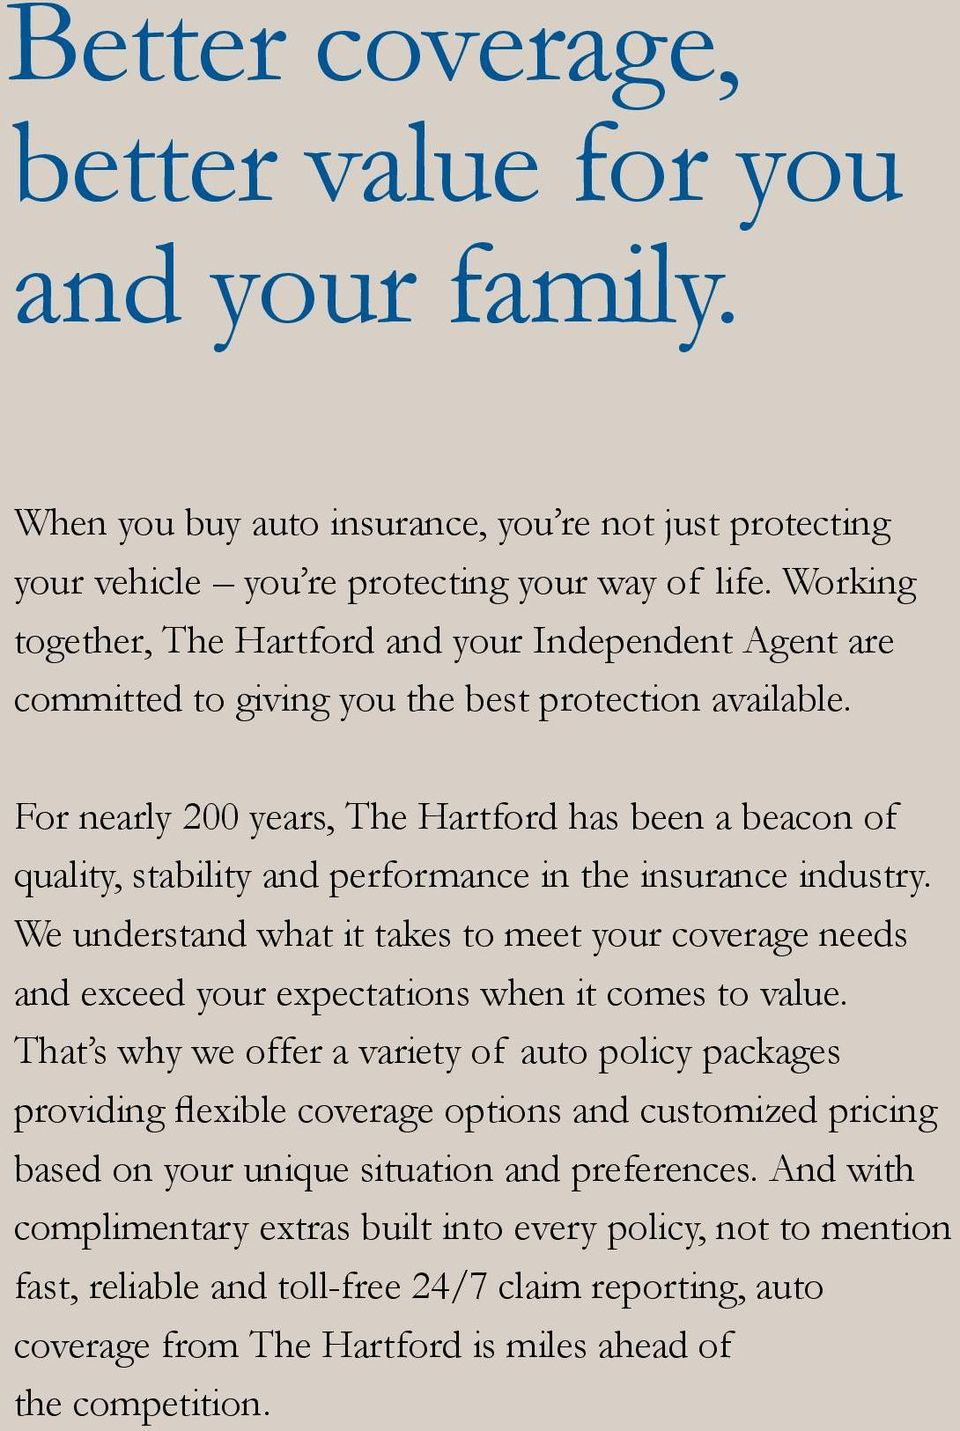 For nearly 200 years, The Hartford has been a beacon of quality, stability and performance in the insurance industry.